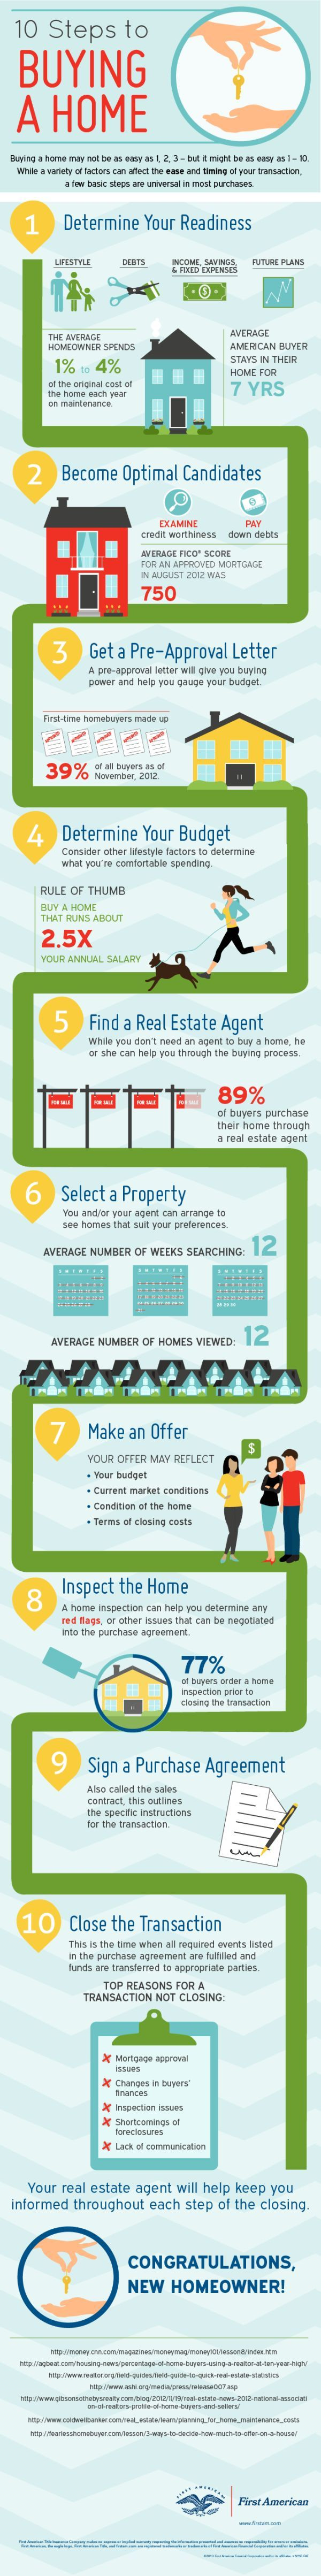 10 Steps to Buying a Home Infographic First American Title buy a home buying your first home #HomeBuyingTips  #RealEstate